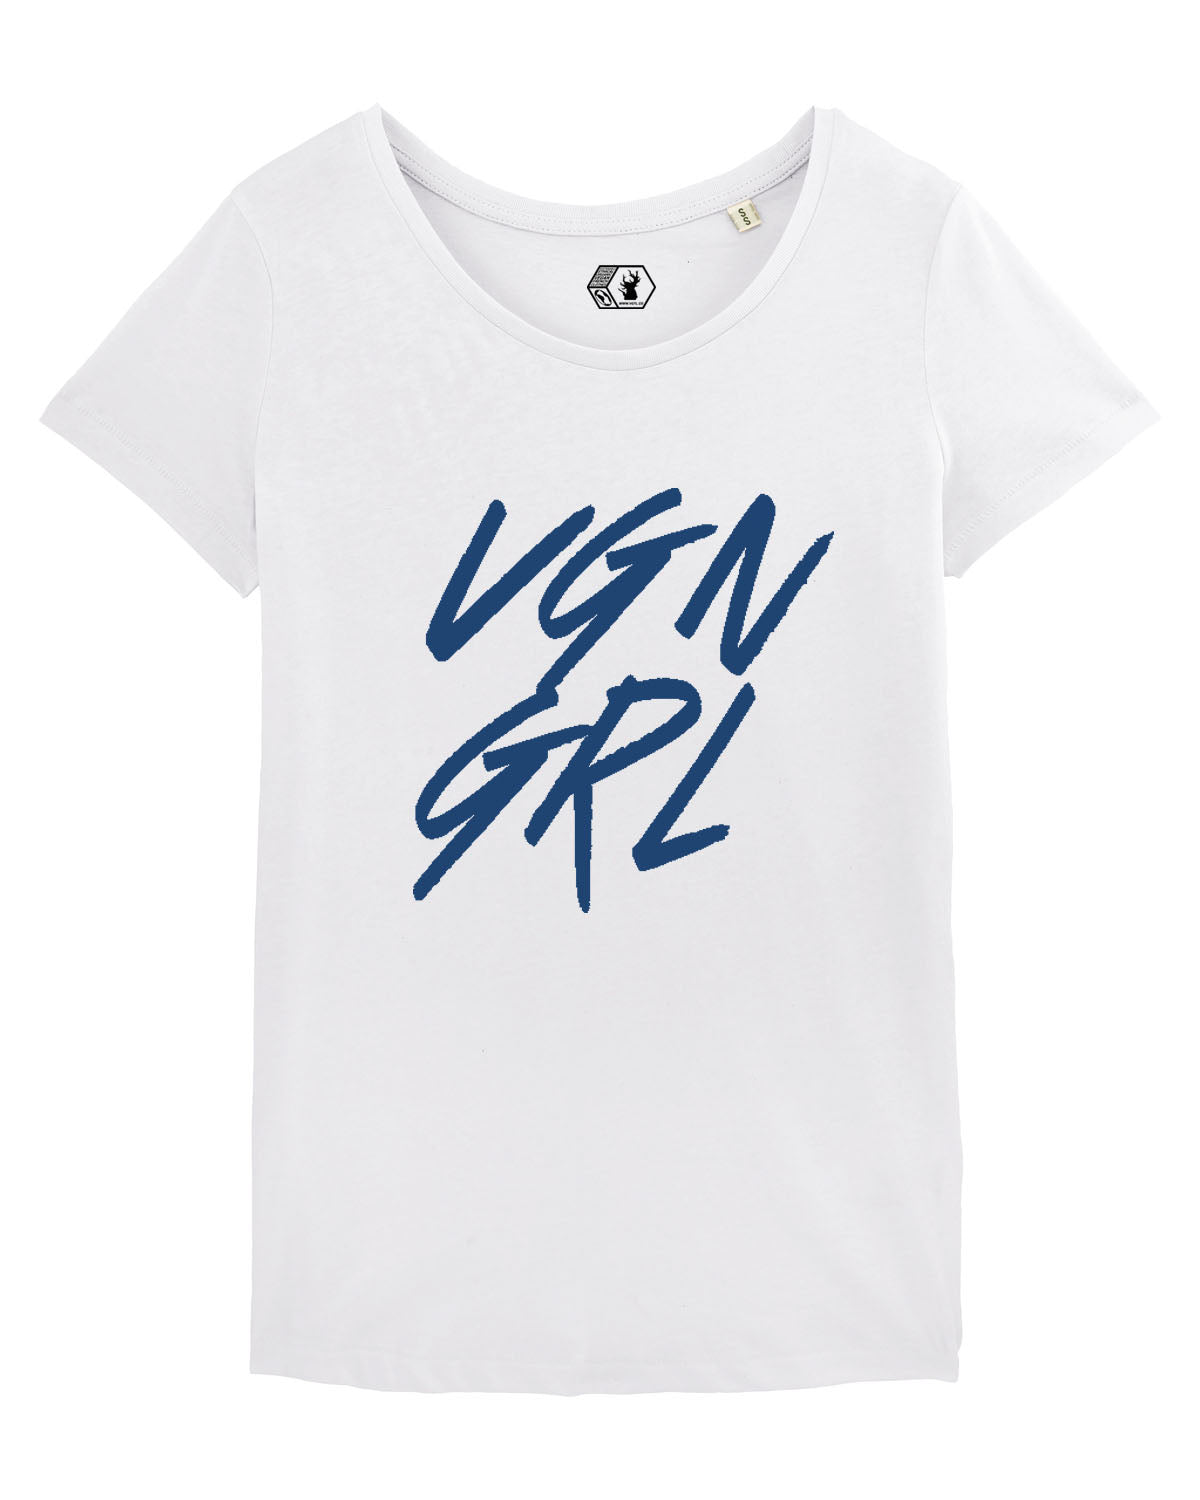 9ea1315735ae PROMO - VGN GRL - Col rond – VGTL by The Green Family